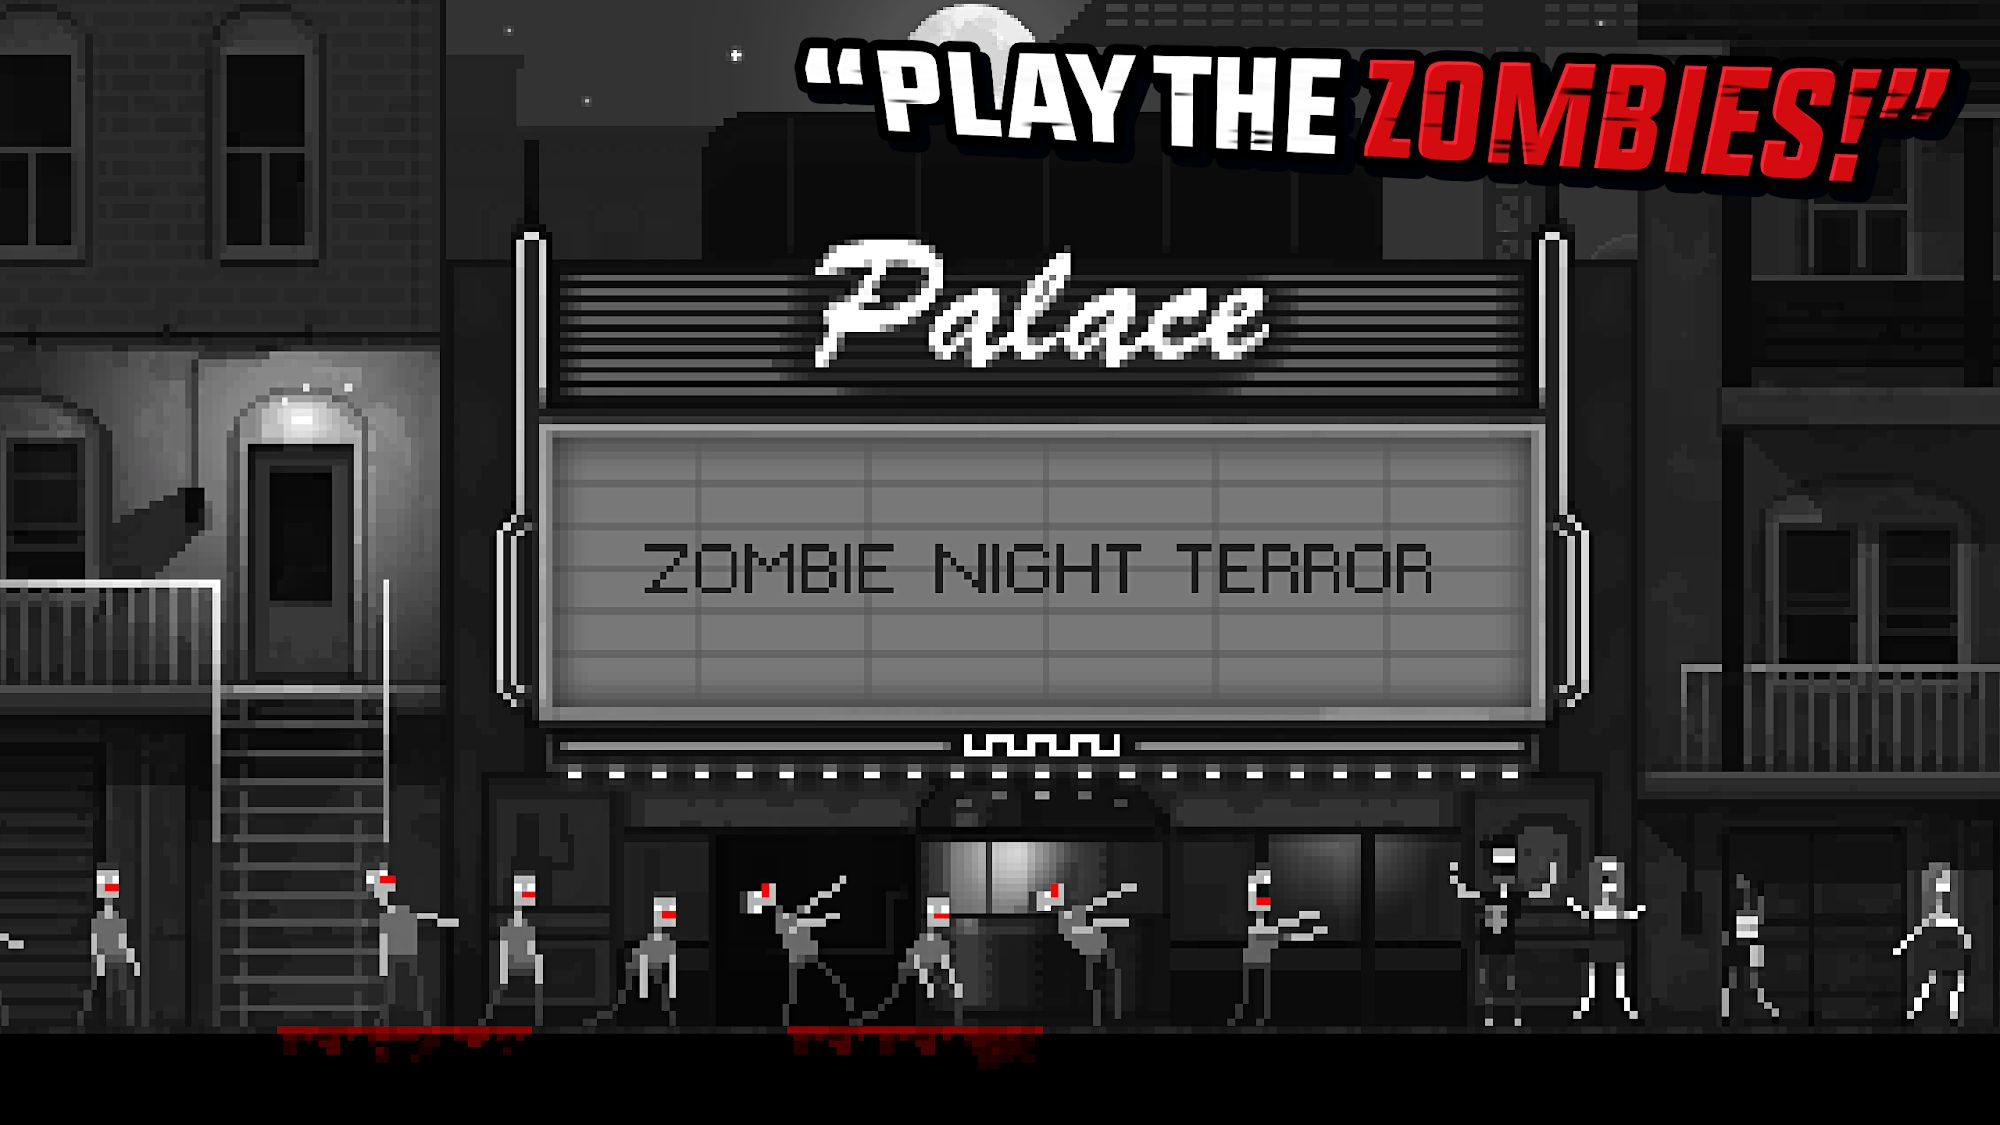 Zombie Night Terror - A plague unleashed para Android